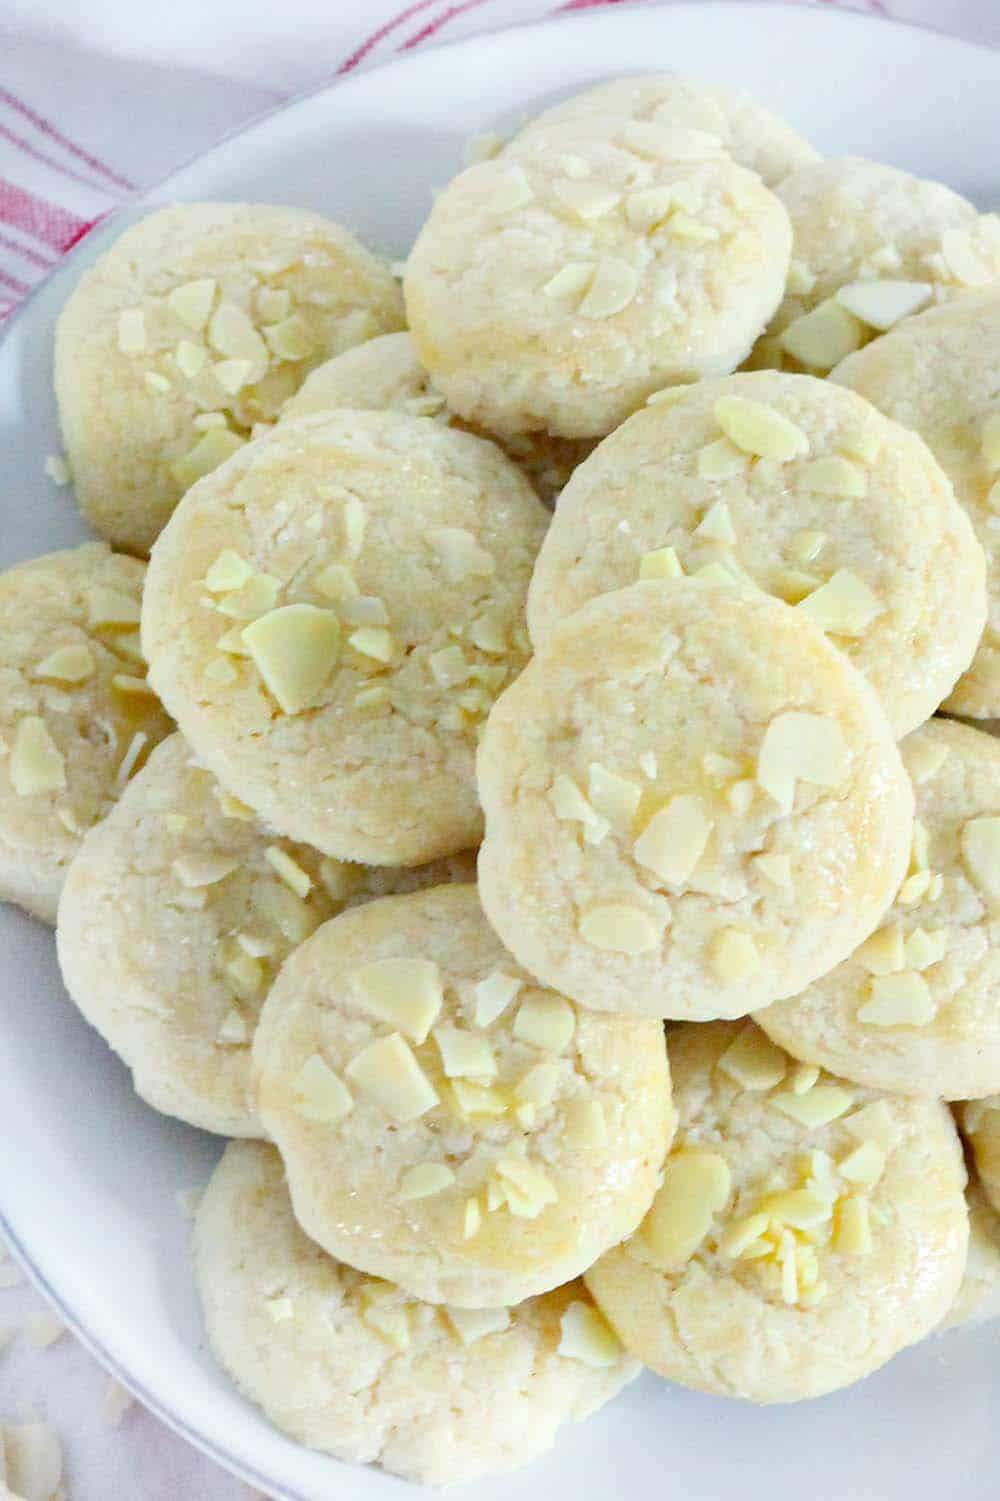 These Norwegian Butter Cookies (Serinakaker) are delicate and buttery, similar to shortbread but less crumbly, with melt-in-your-mouth almond and vanilla flavors. They are the PERFECT cookie, especially if you're looking for a new Christmas cookie recipe! | www.bowlofdelicious.com